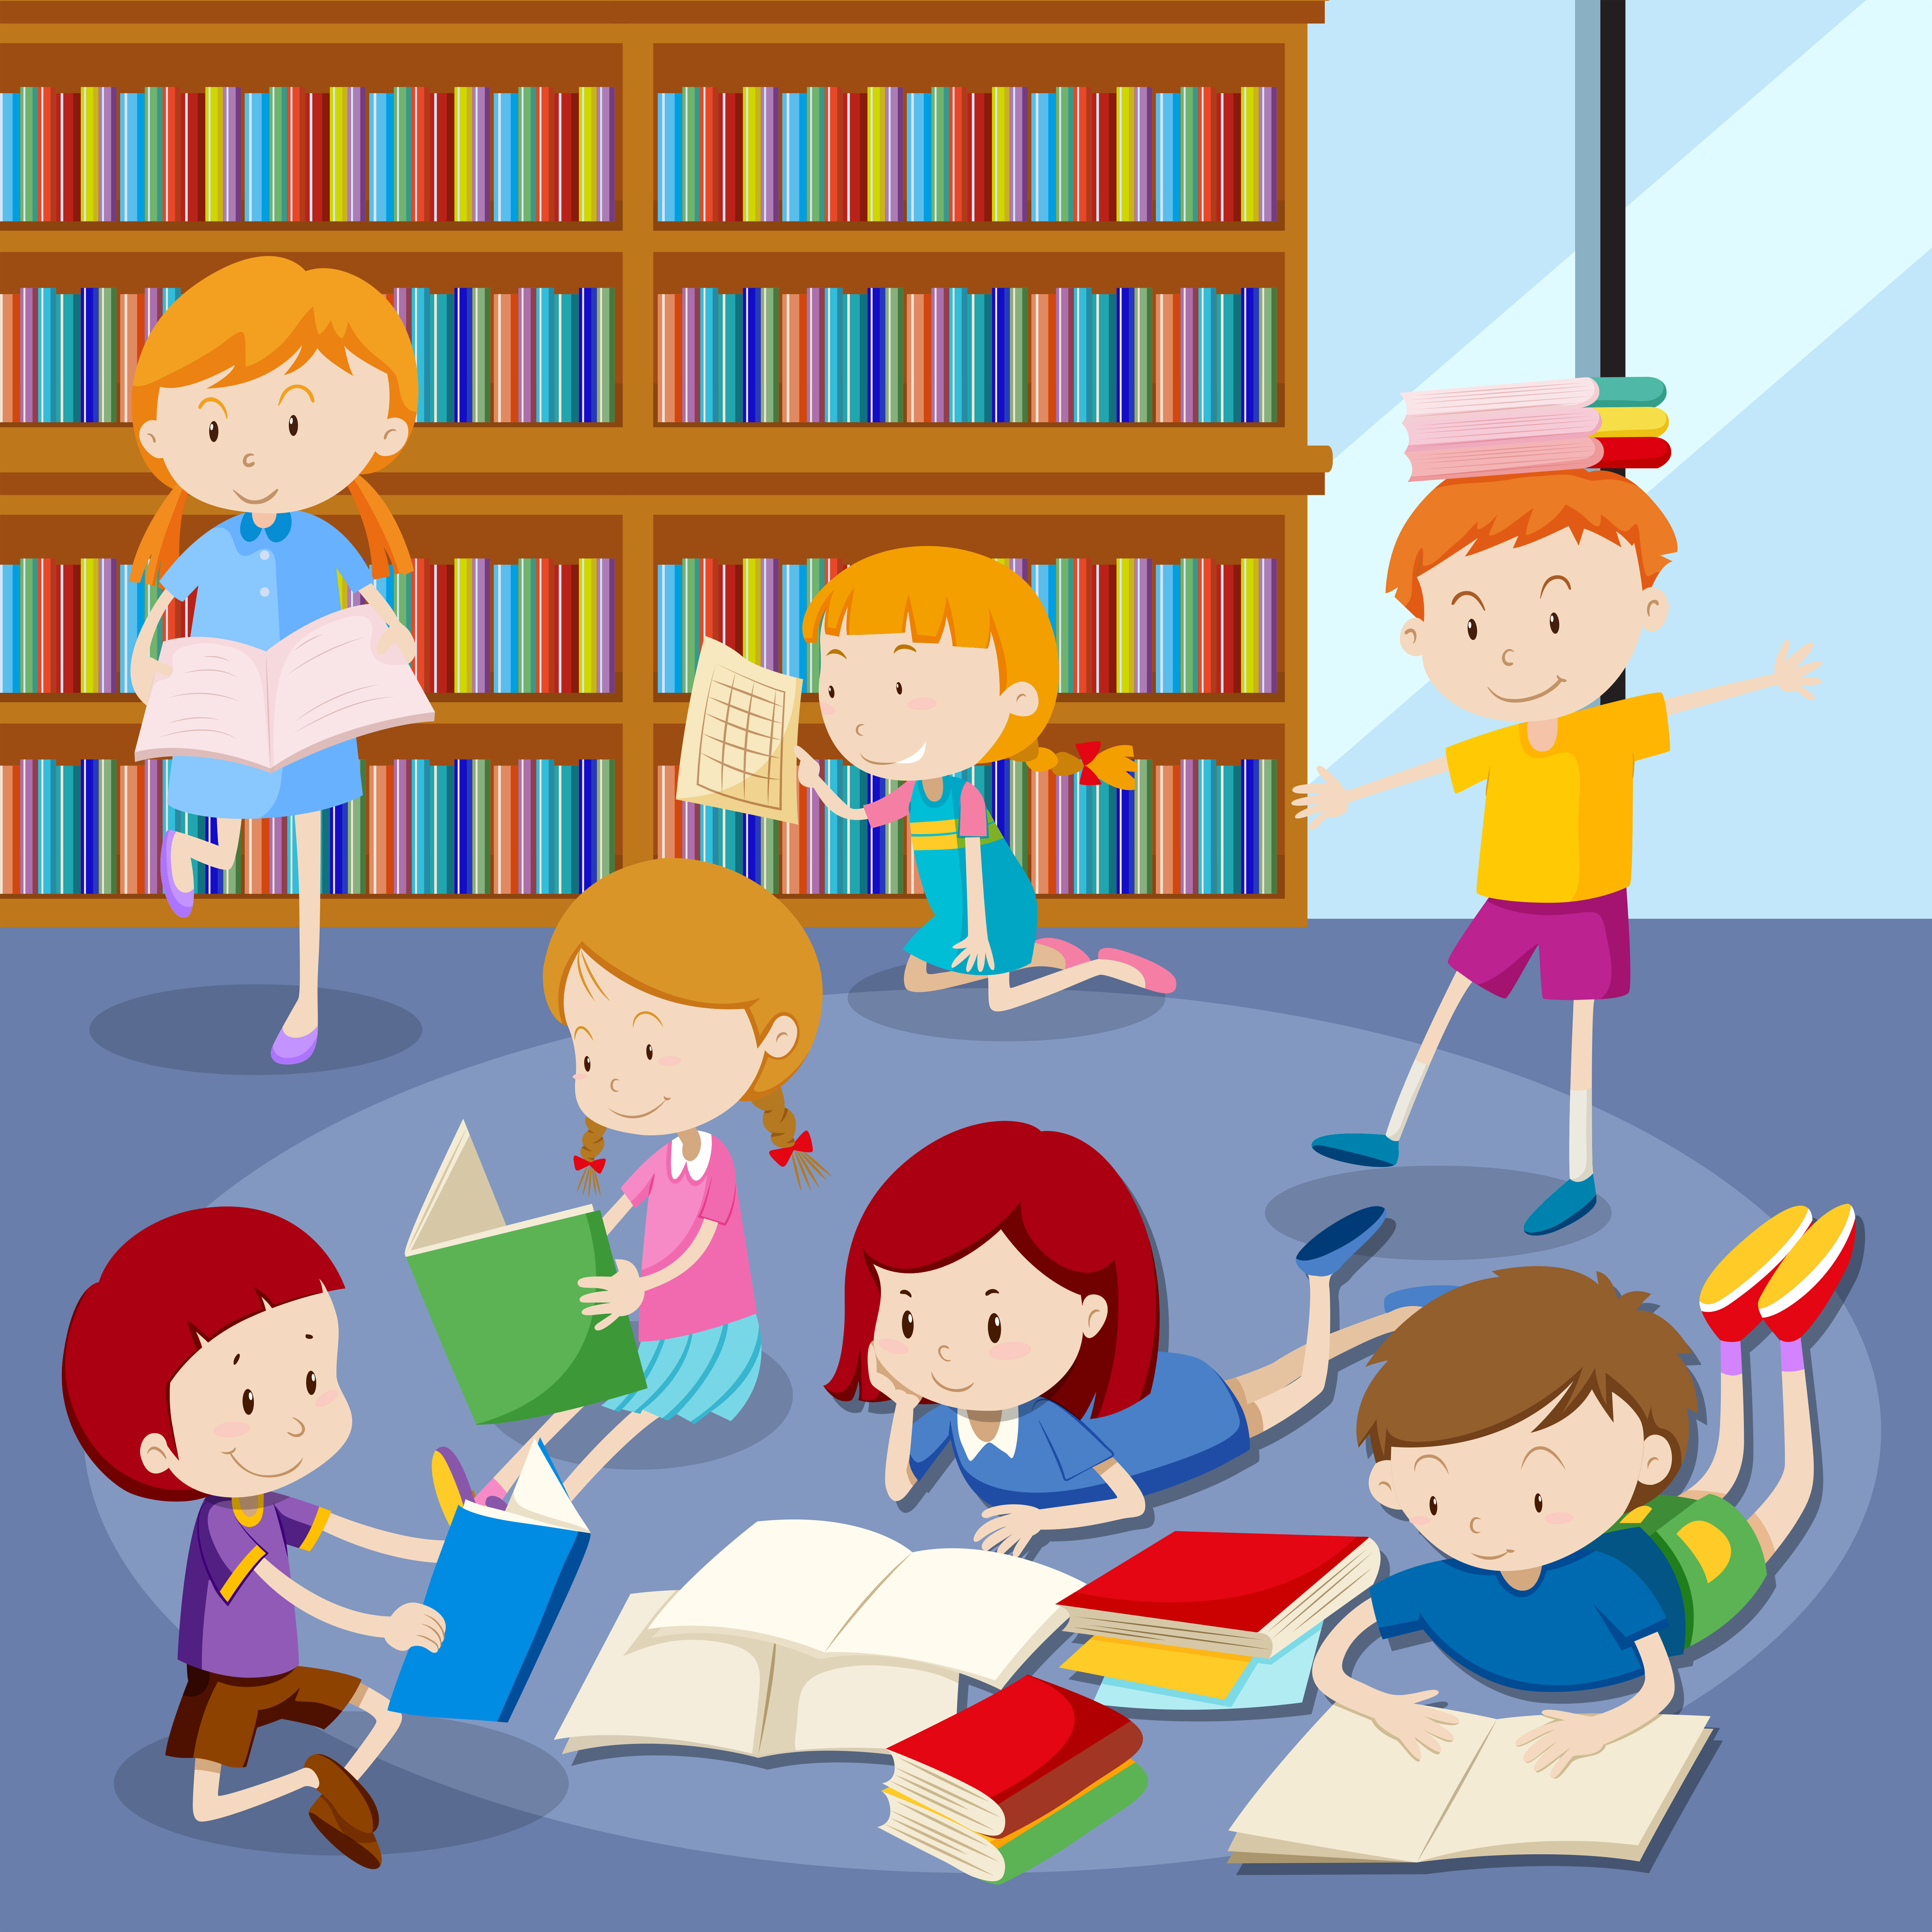 Many students reading books in library - Download Free ...